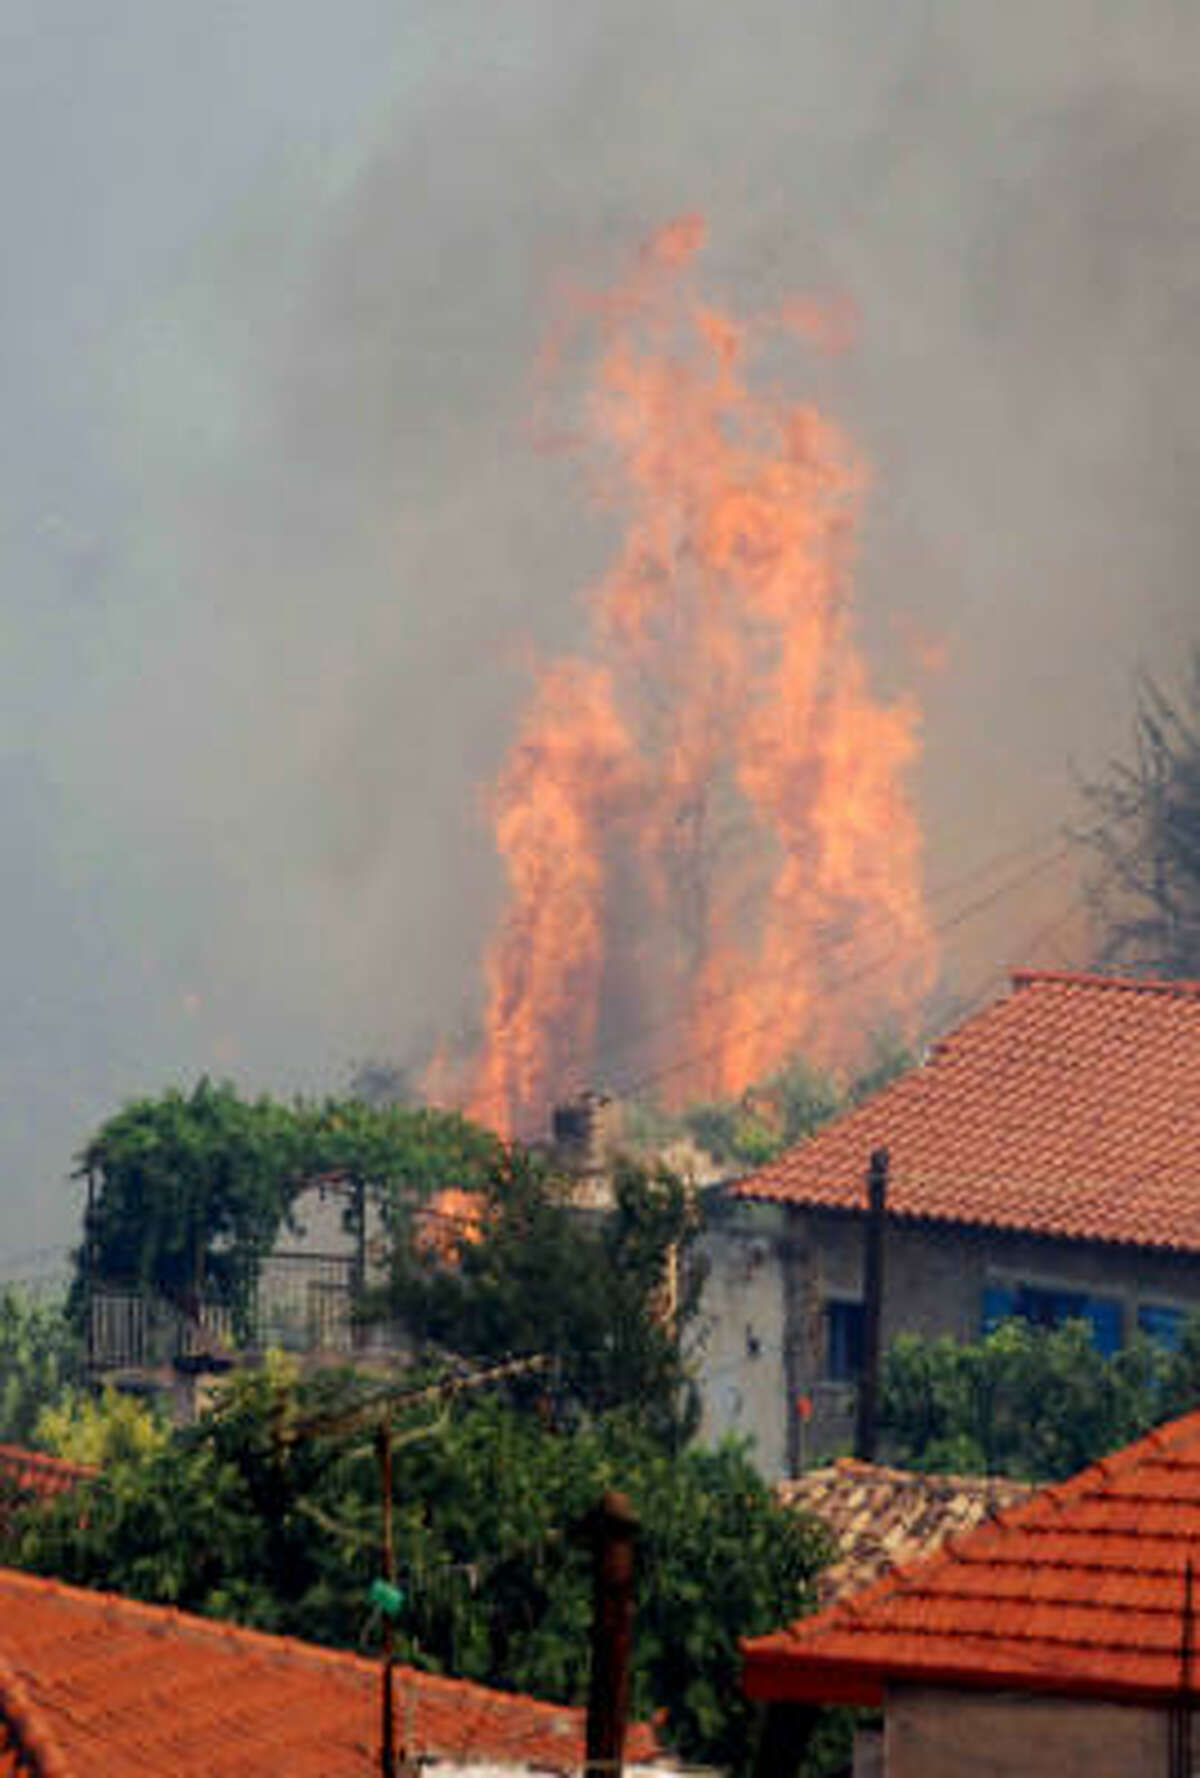 A fire burns next to houses in the village of Mavriki in southern Greece on Wednesday.